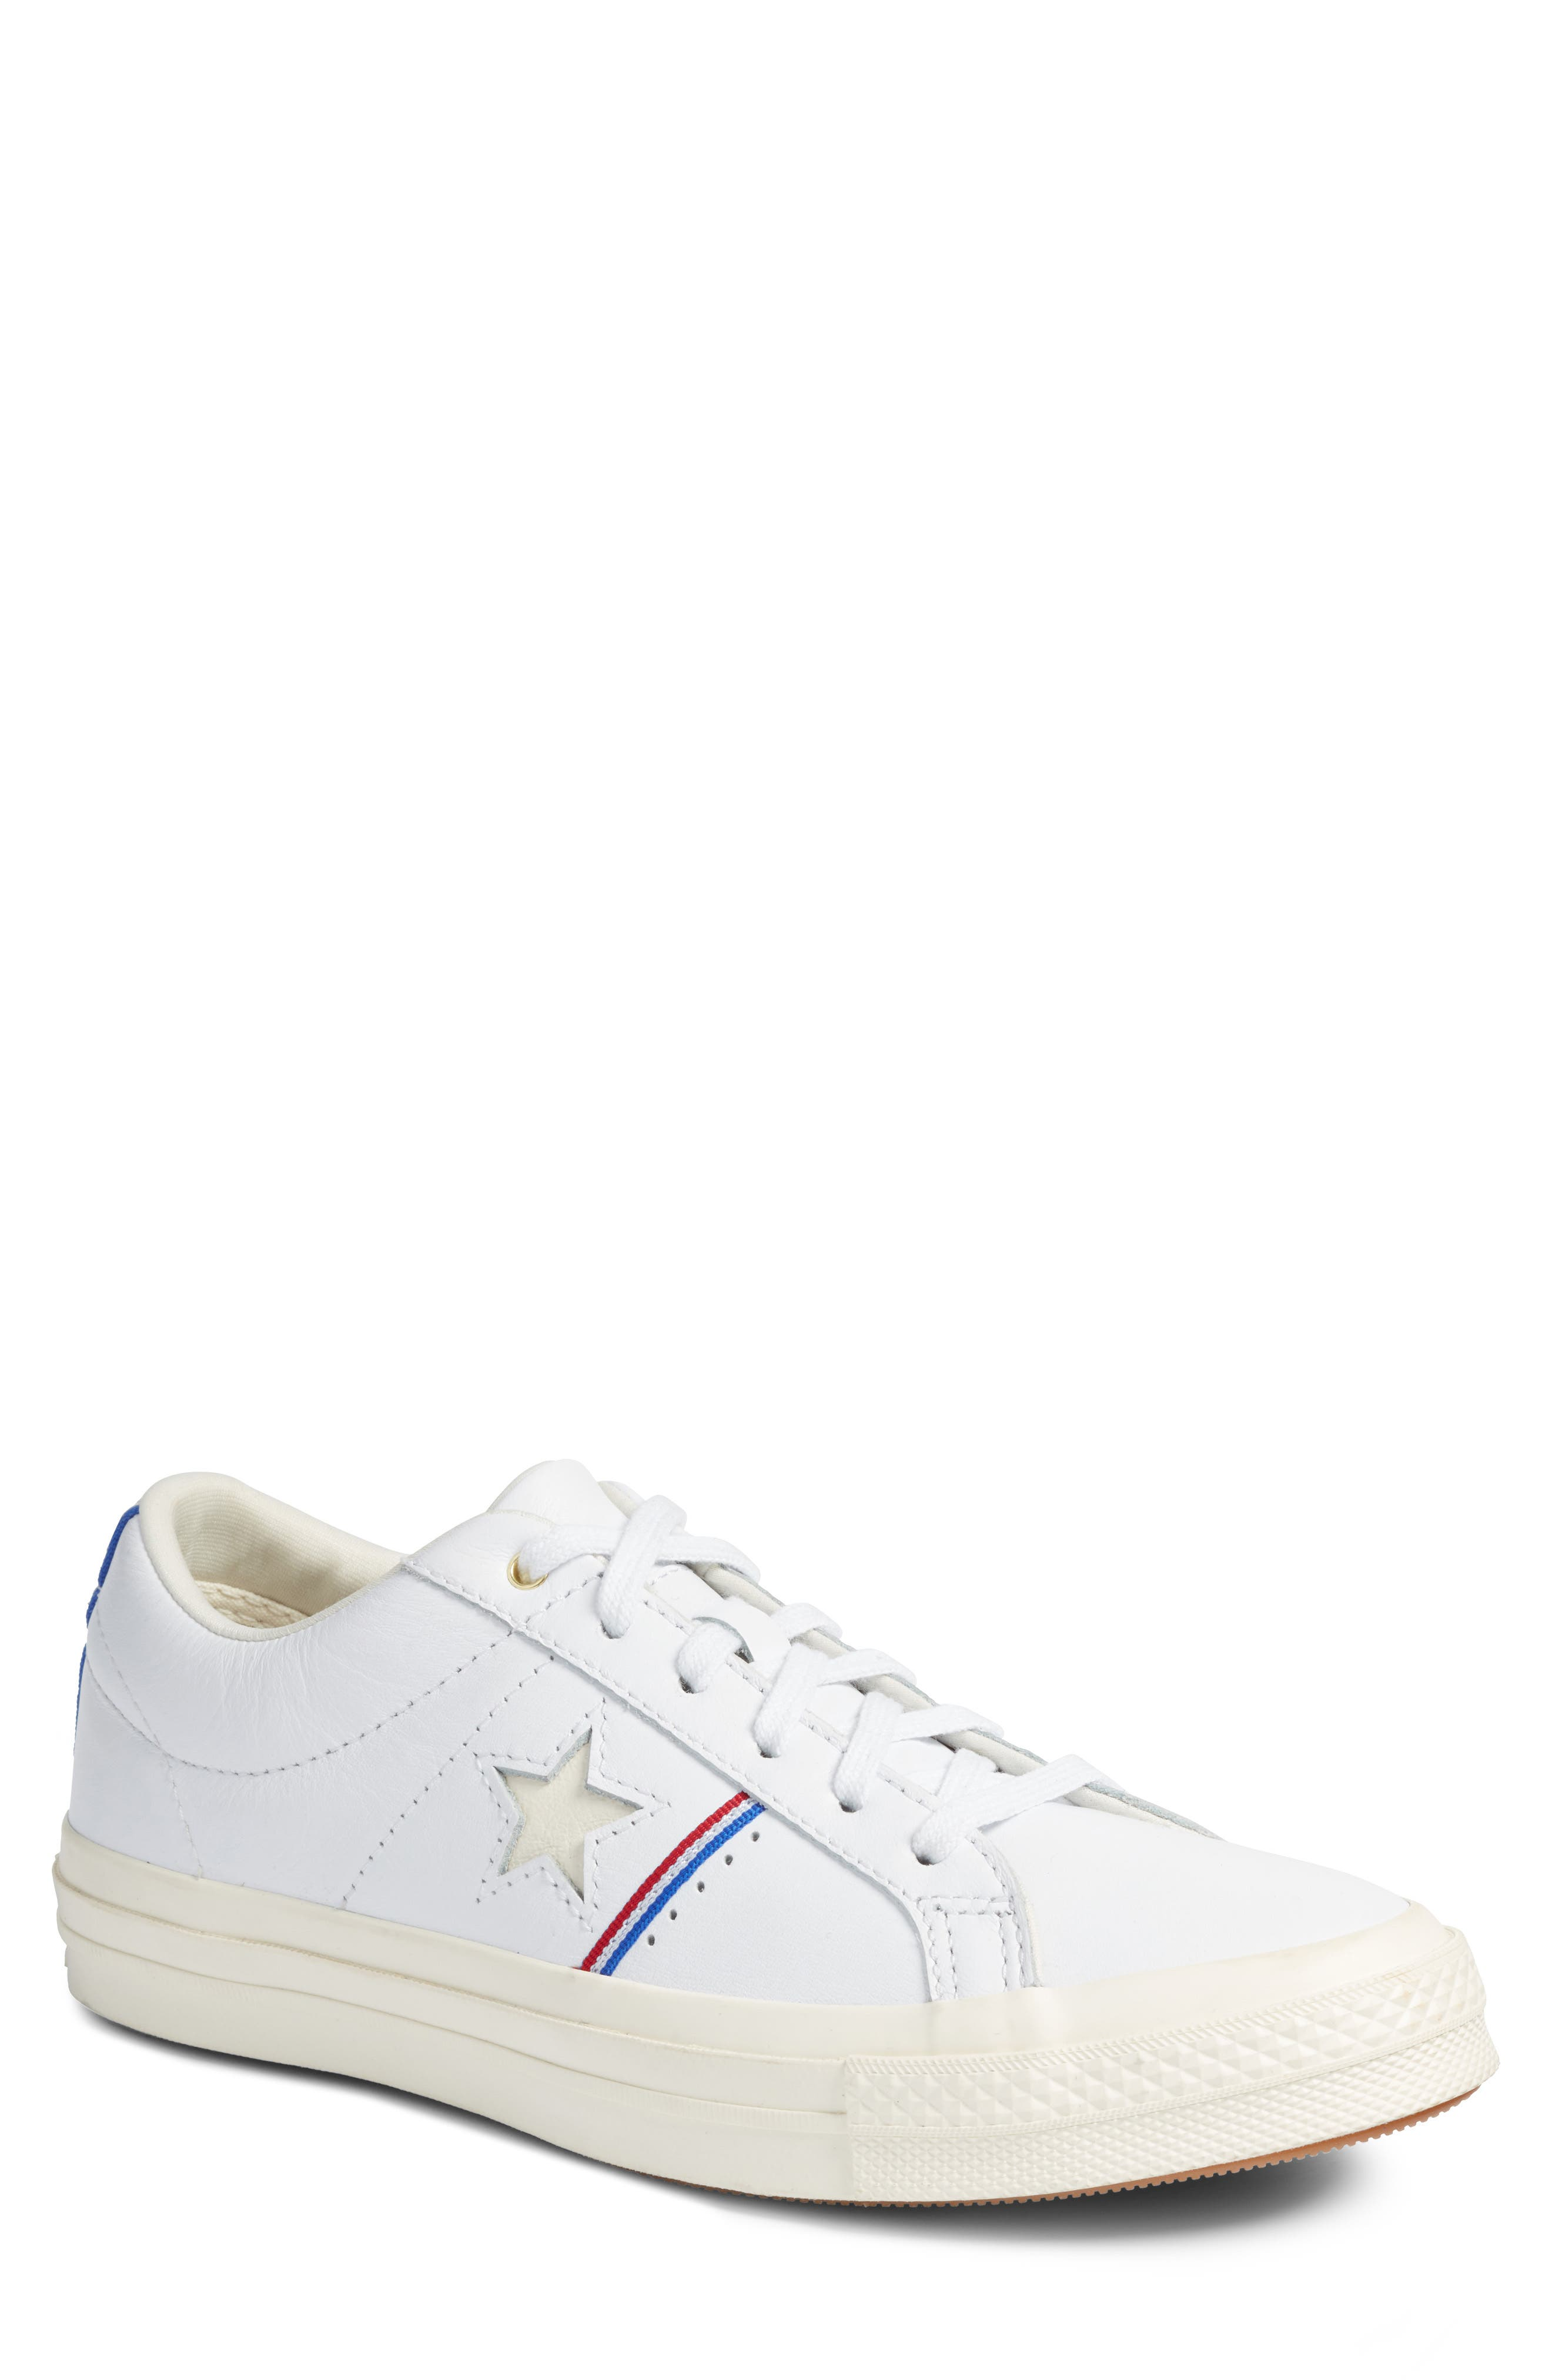 Alternate Image 1 Selected - Converse Chuck Taylor® All Star® One-Star Sneaker (Men)